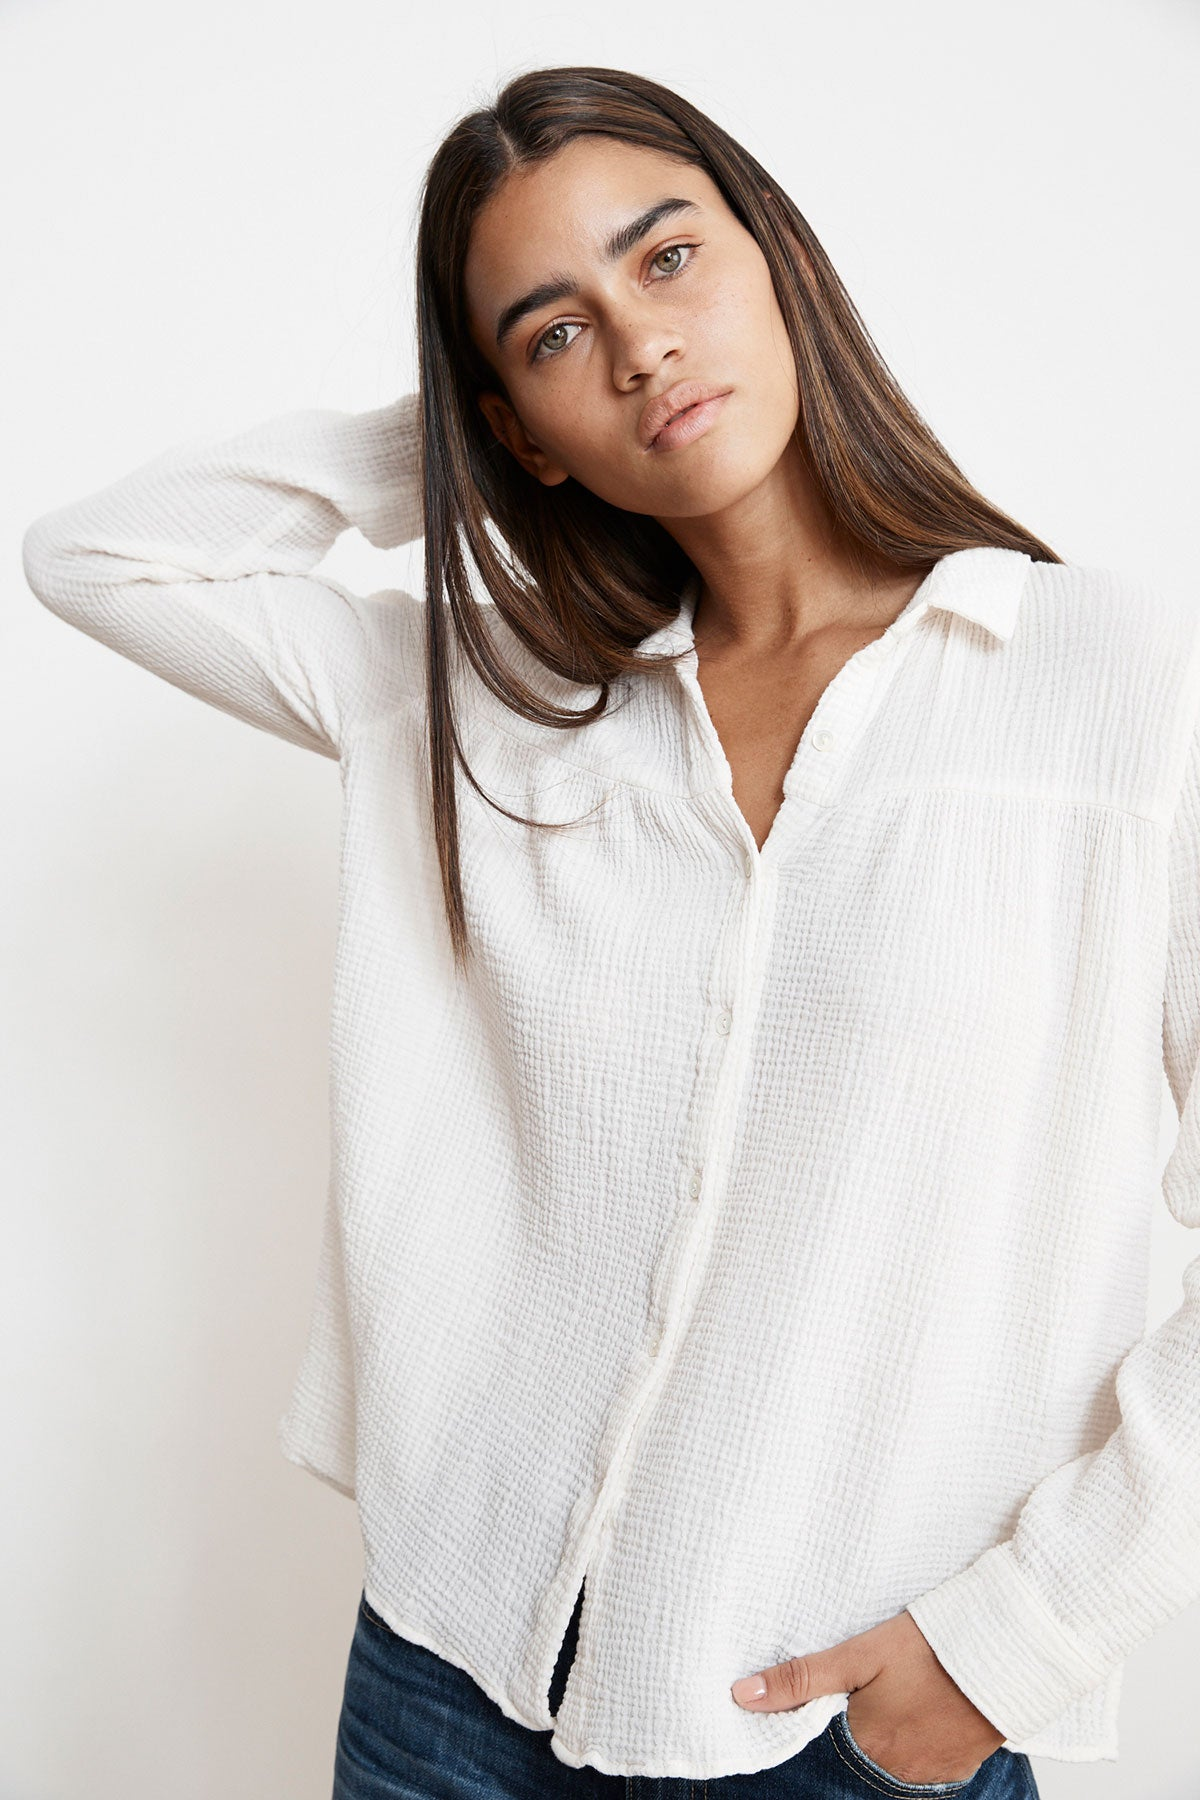 MONTY WINTER GAUZE BUTTON UP TOP